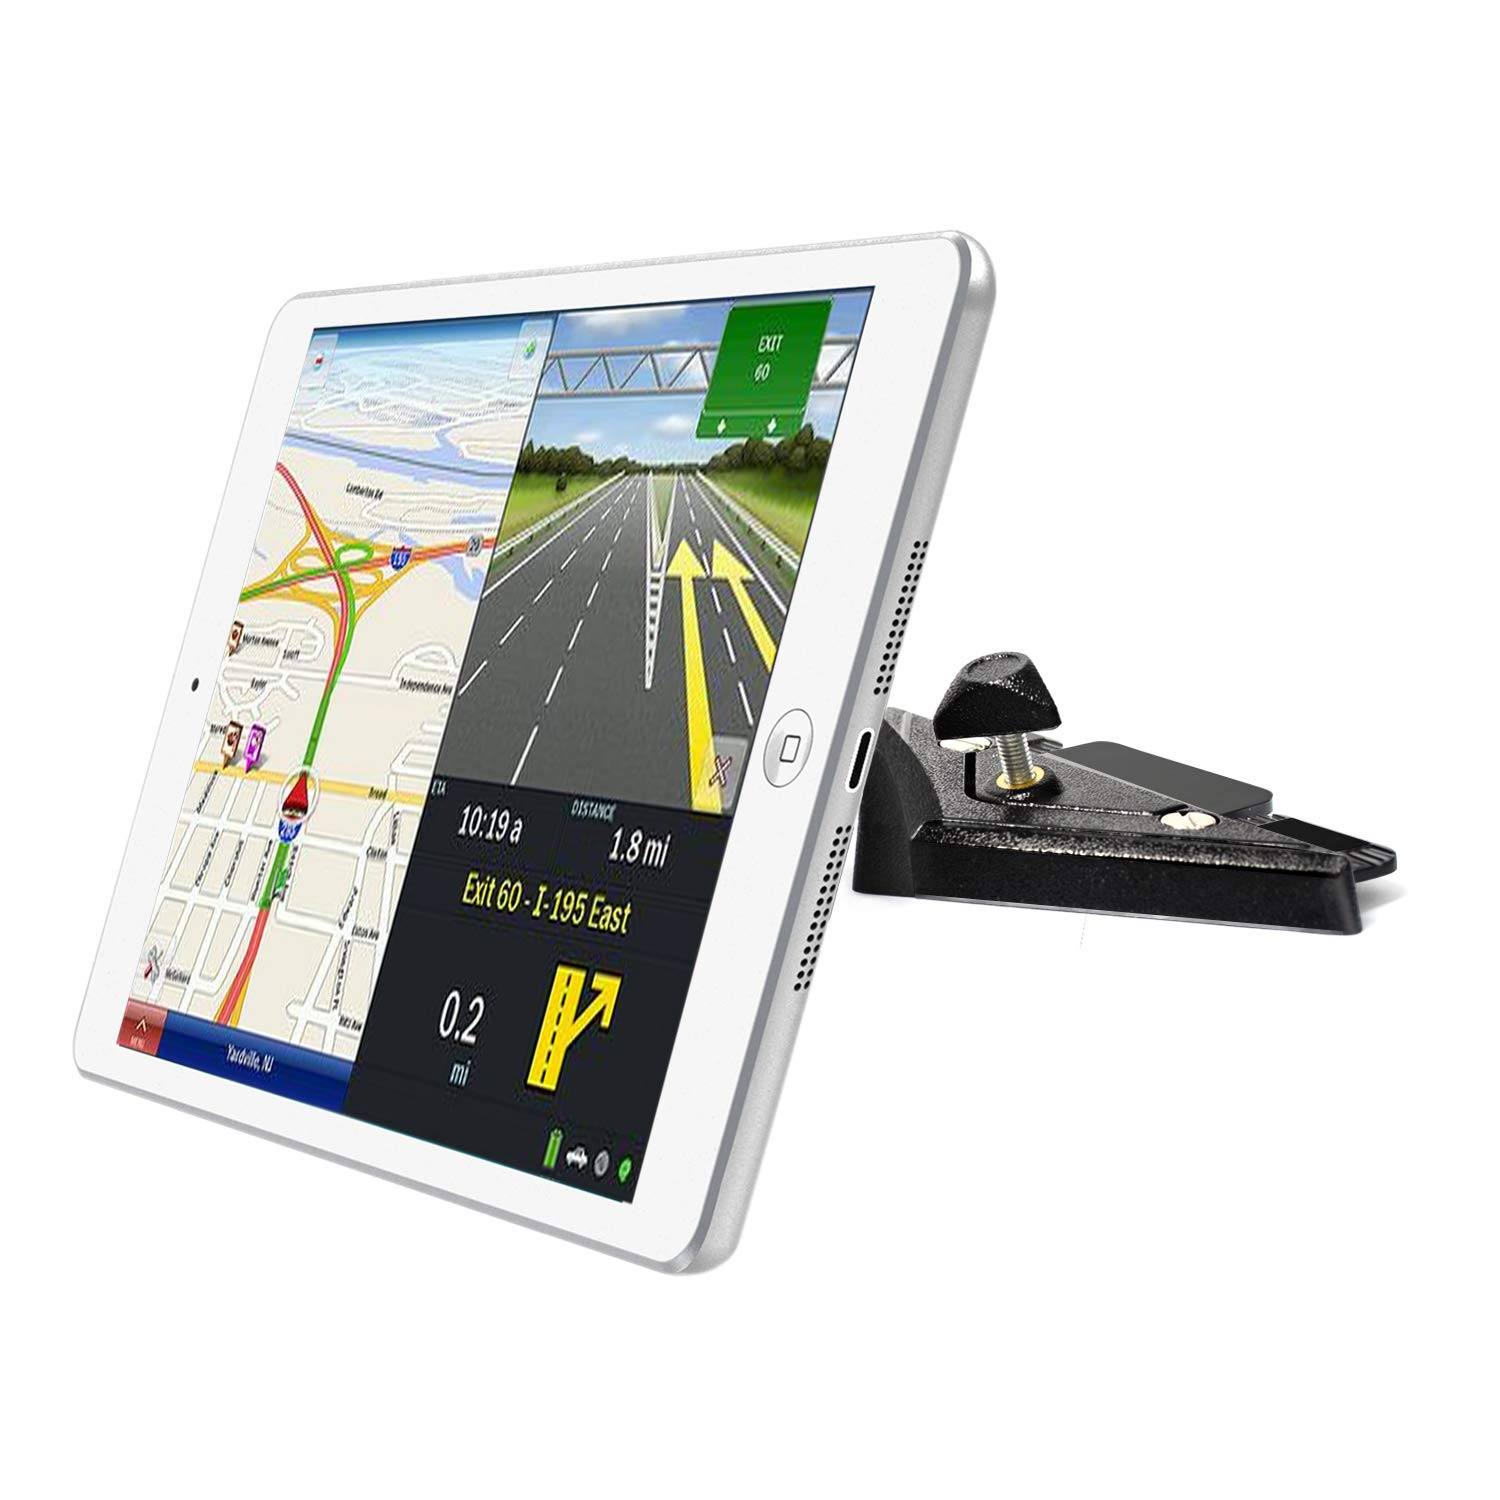 """INNOMAX iPad Car CD Slot Mount,Tablet Holder for Car,CD Player Tablet Mount, Universal Magnetic CD Player Tablet Mount for Tablets, iPads, Samsung Tablets from 7"""" to 9"""", Cell Phone, GPS etc"""